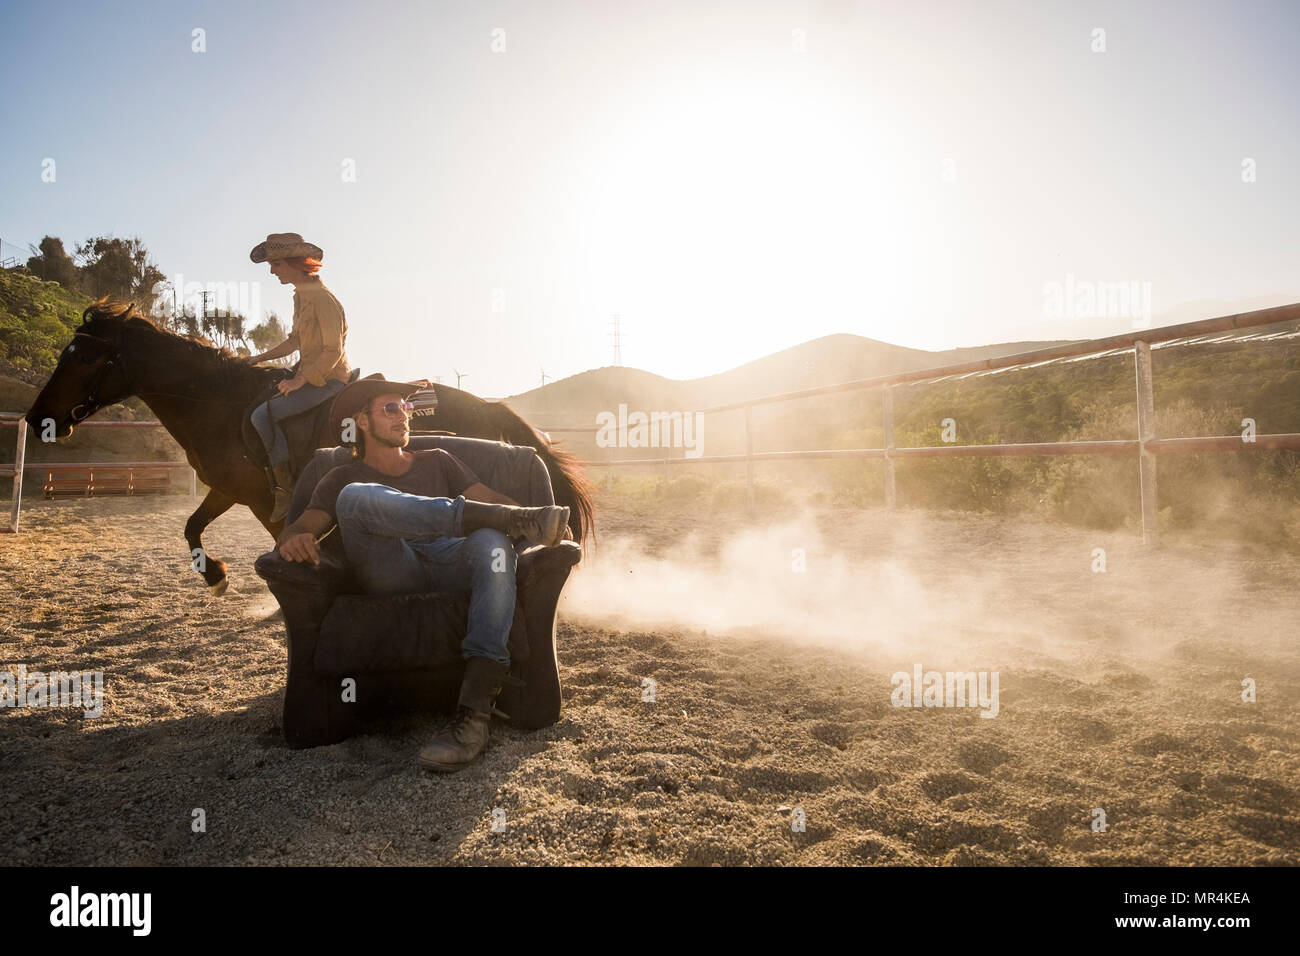 couple of beautiful man and woman together. she rides a horse making dust with speed and he stays sit down on the chair in the middle of the track - Stock Image